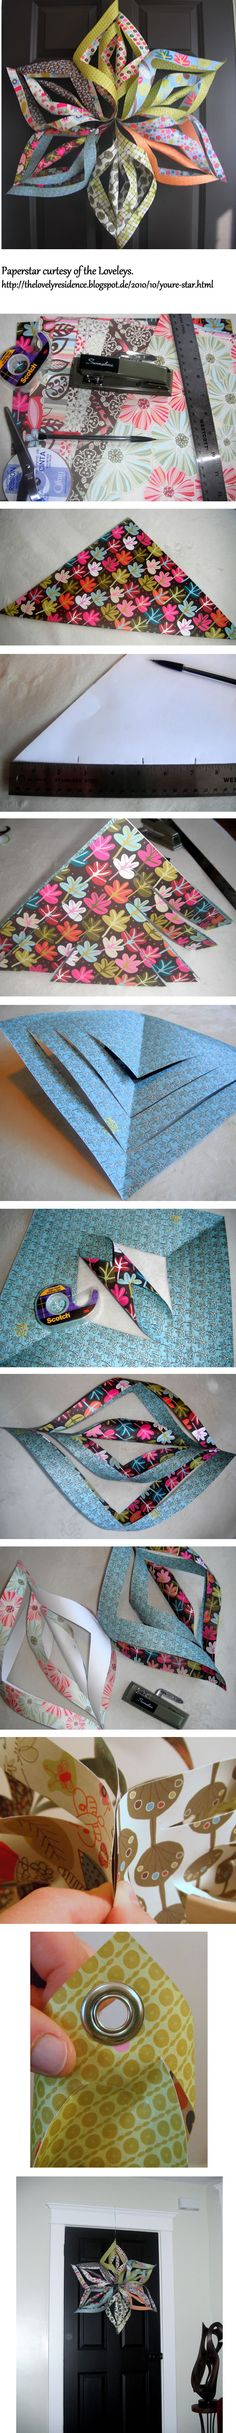 Pinterest | 81 Handarbeit images | Do it yourself, Baby dolls and ...